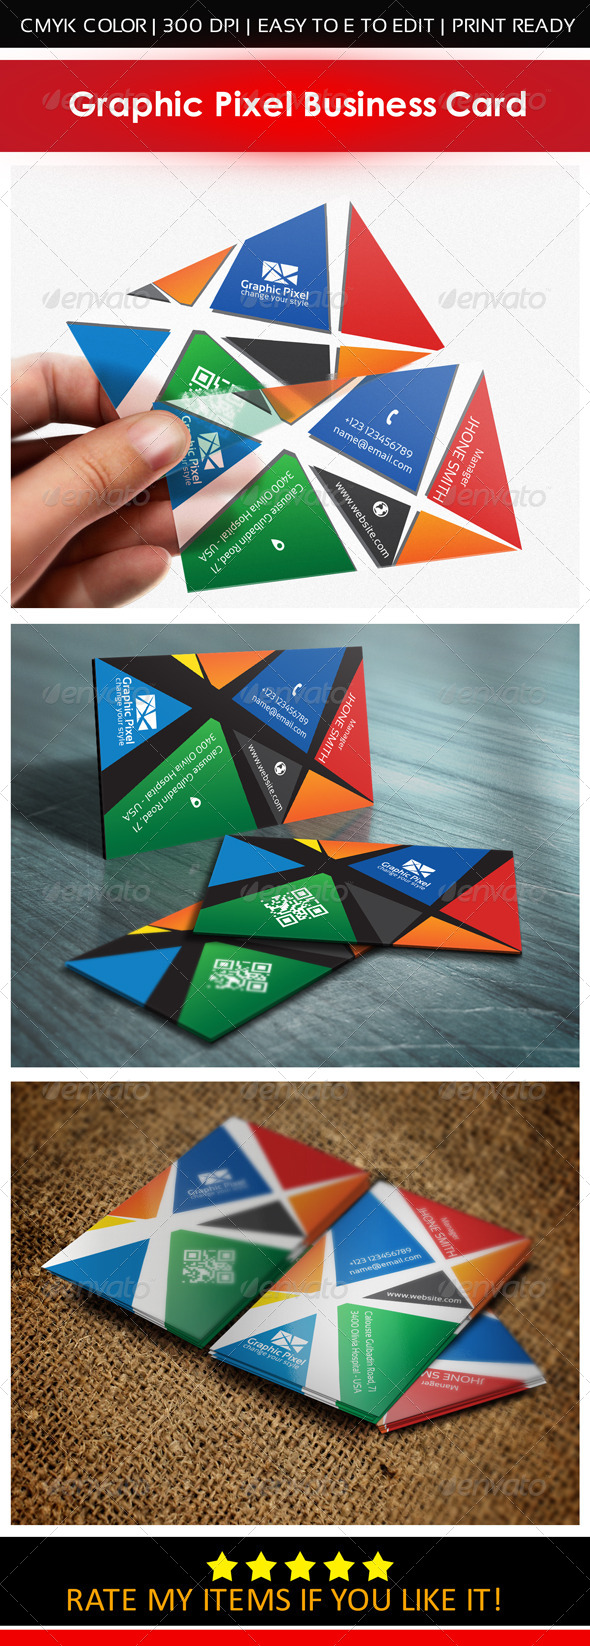 GraphicRiver Graphic Pixel Business Card 6881786